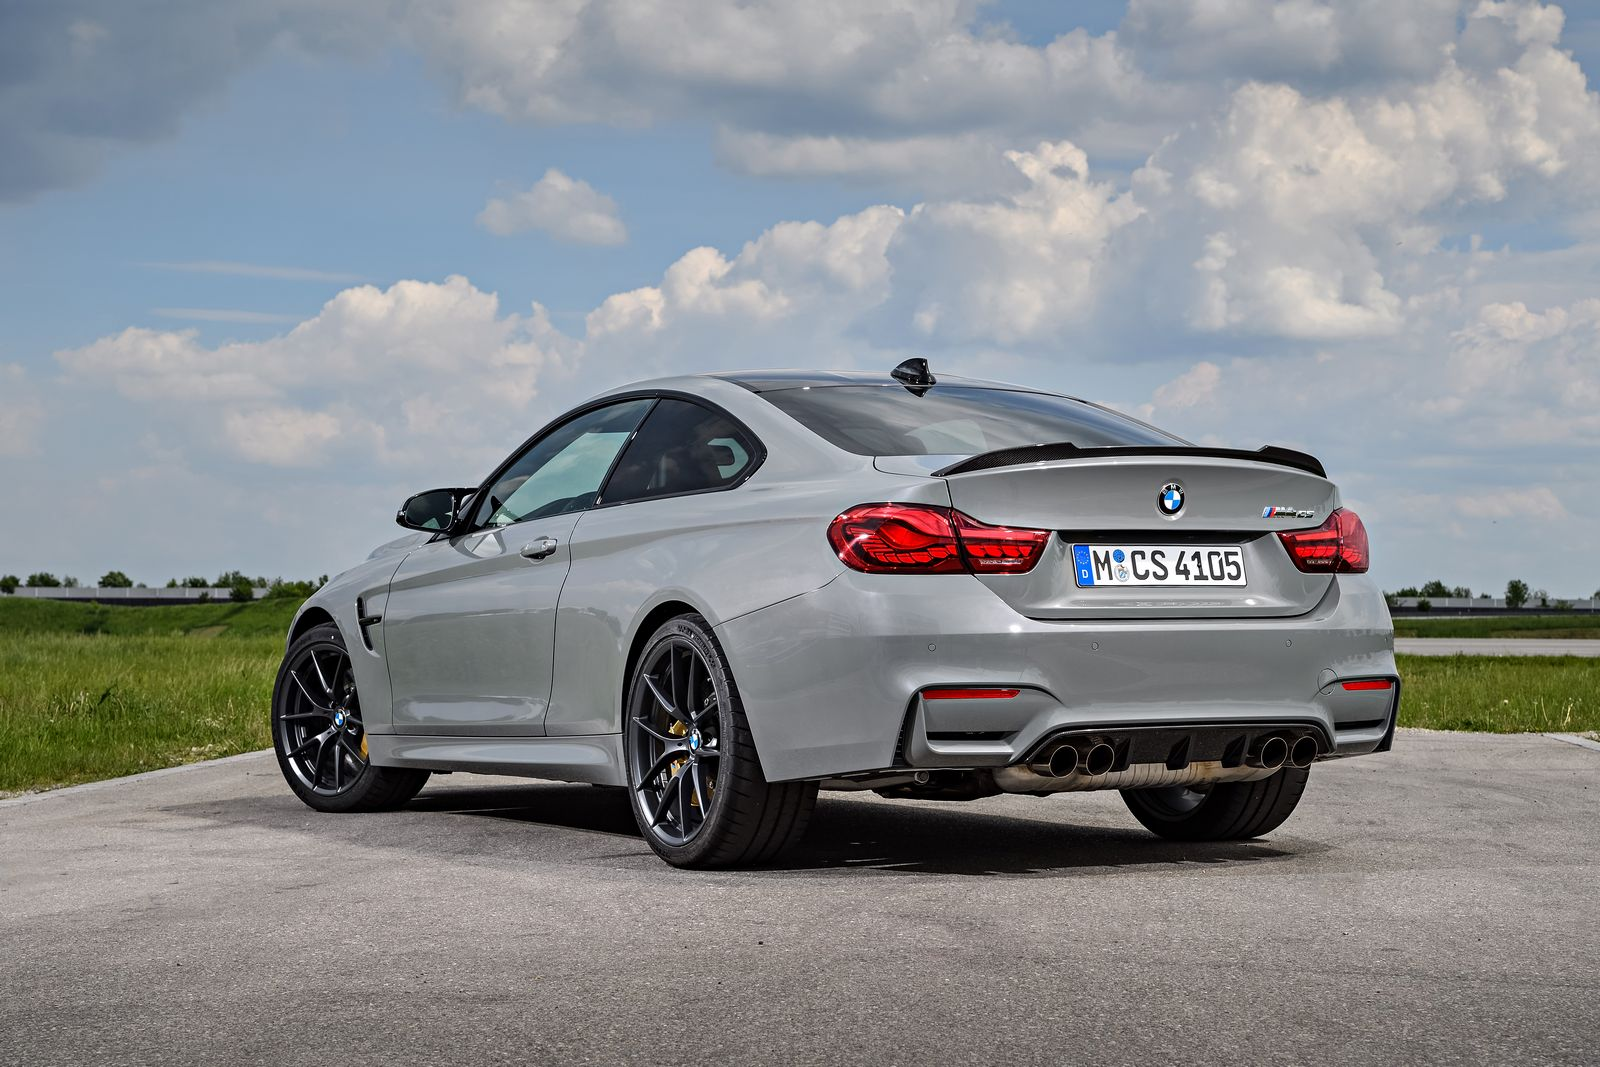 2018 bmw m4 cs stuns in new gallery 186 pics carscoops. Black Bedroom Furniture Sets. Home Design Ideas